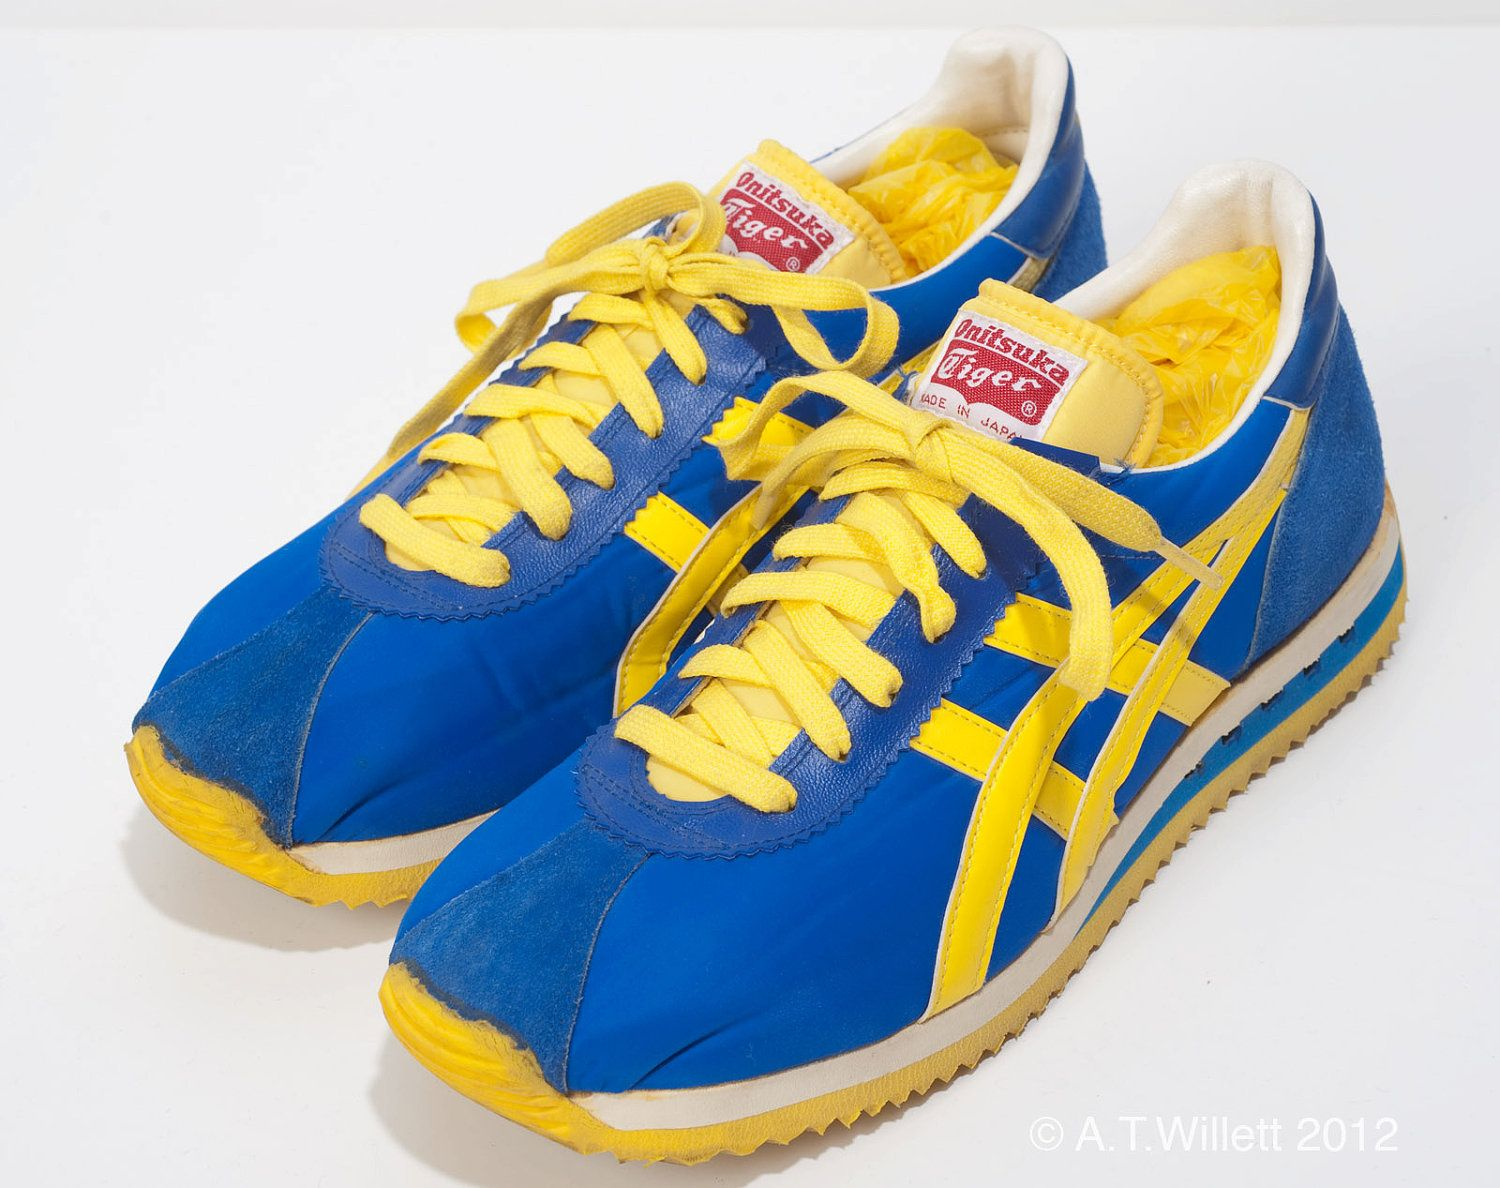 1970 s Vintage Onitsuka Tiger Running Shoes 7.5 UCLA Blue Yellow w ... f1063f696d4b